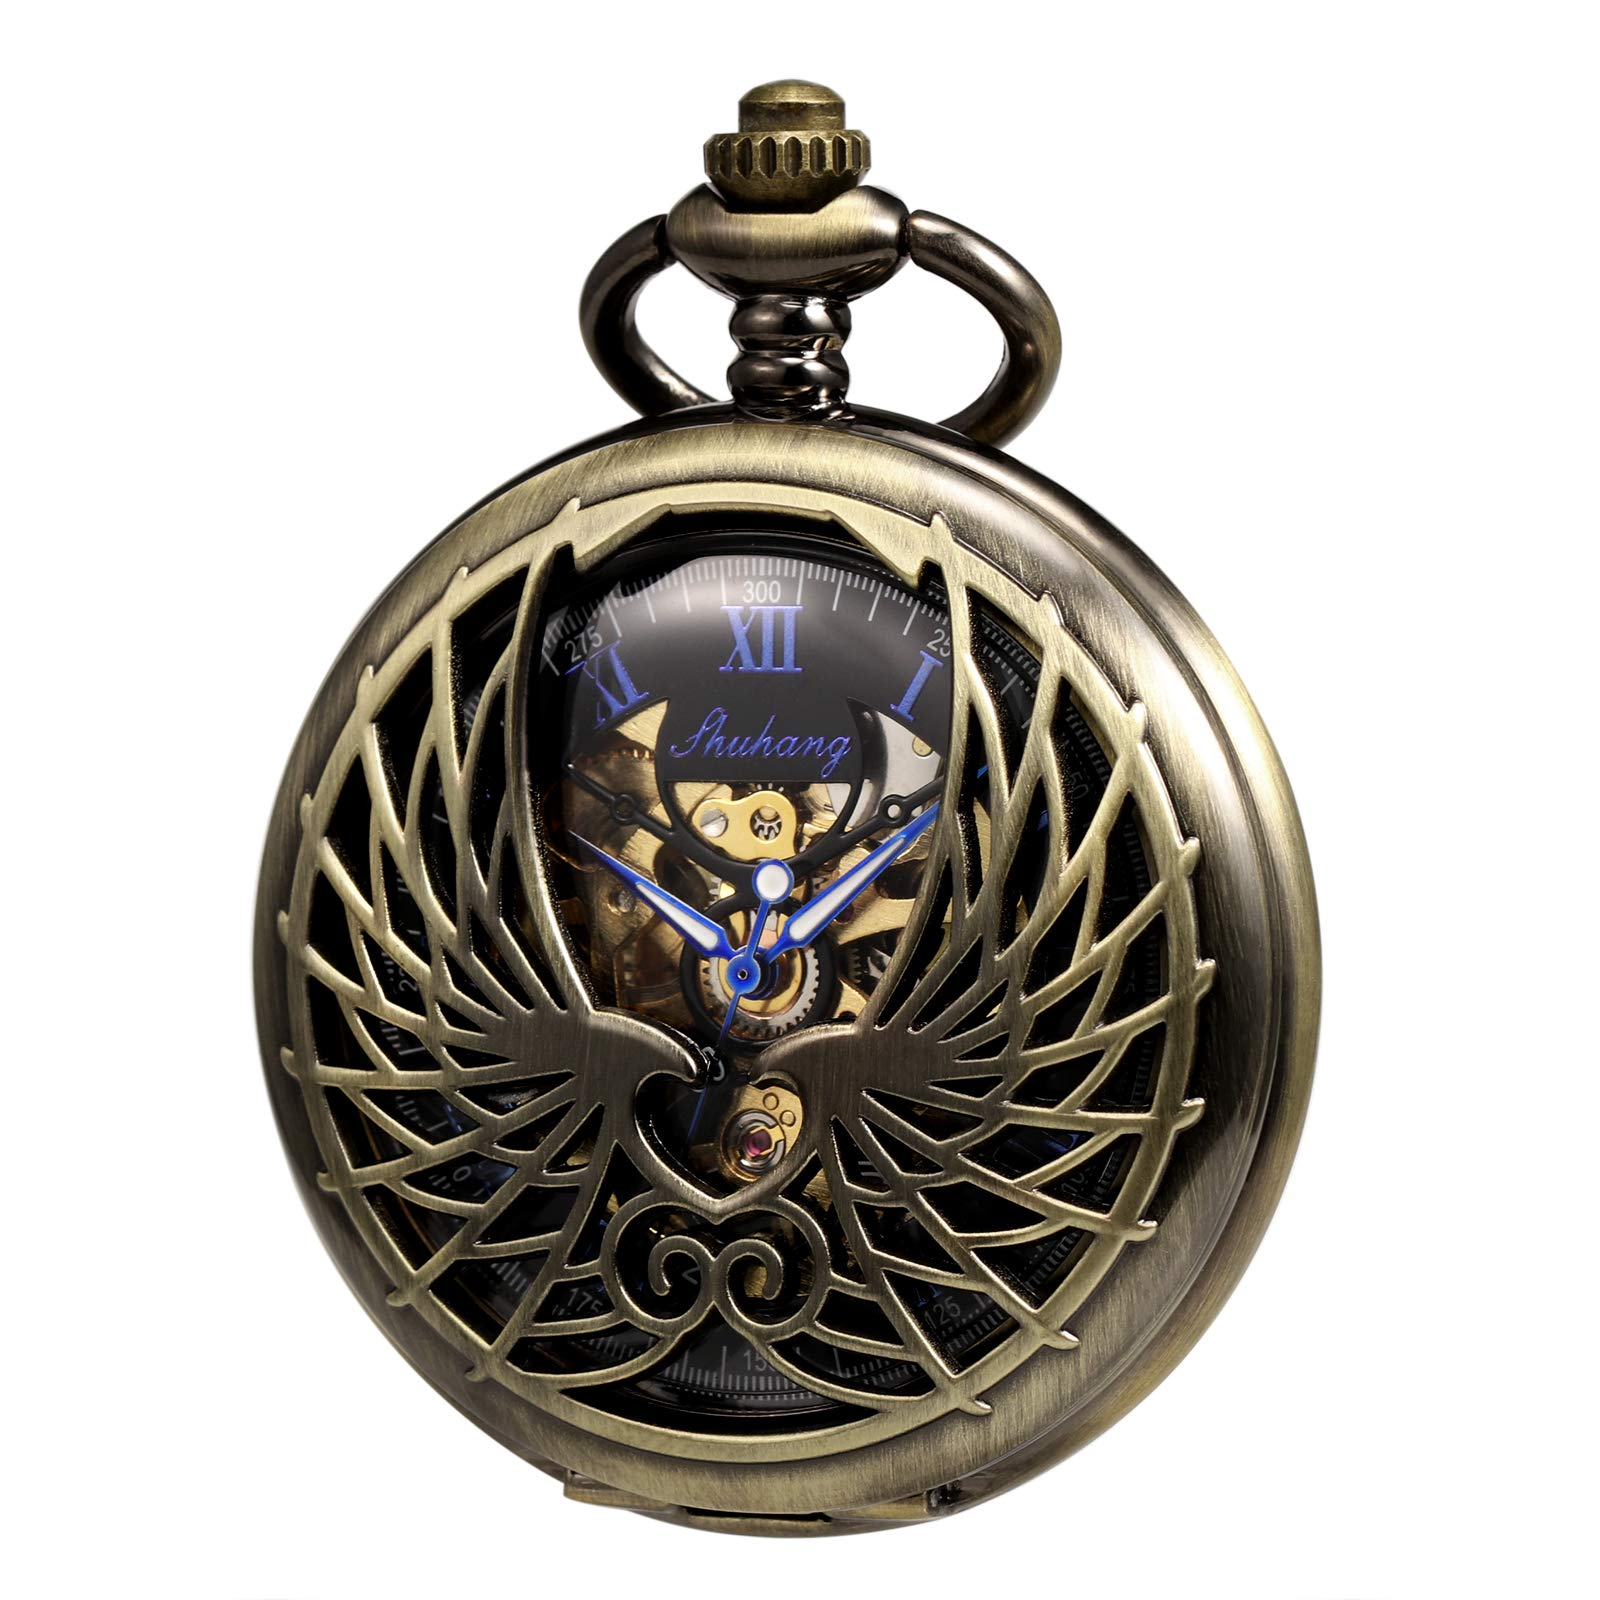 TREEWETO Men's Women's Pocket Watch Mechanical Skeleton Eagle Wings Double Hollow Case Roman Numeral with Chain Gift Box by TREEWETO